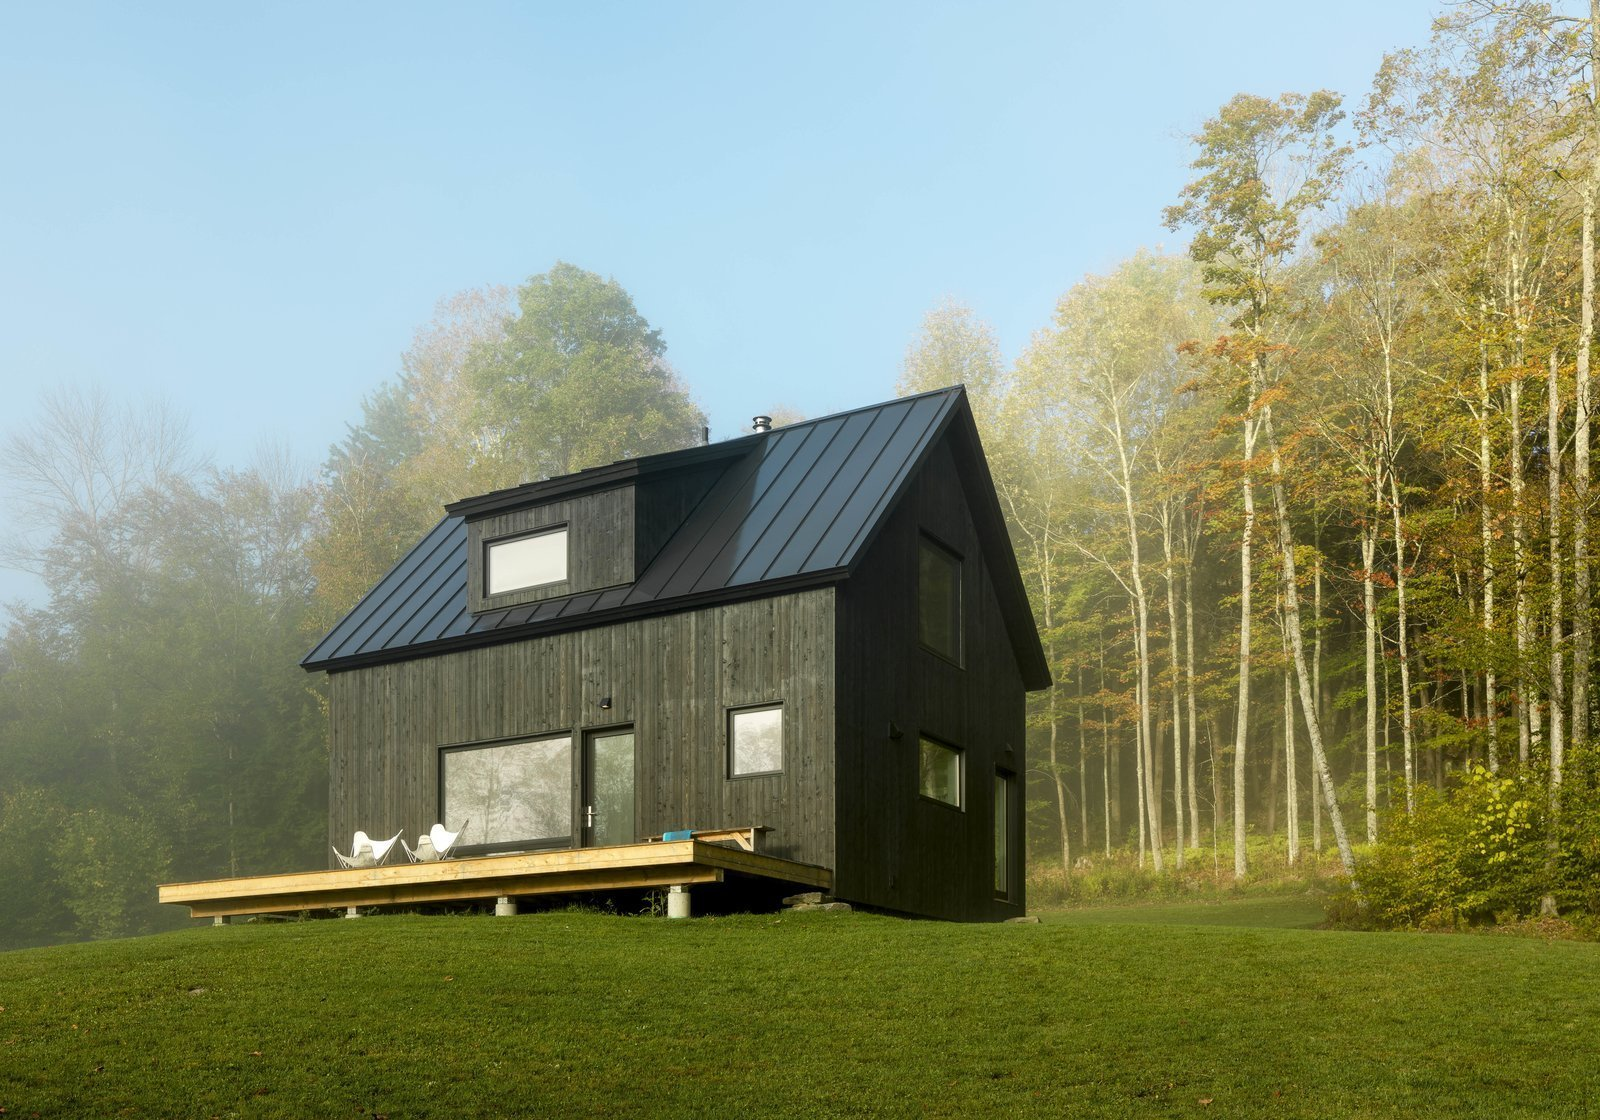 A Little Black Cabin Keeps Things Simple for a Family of Four in Vermont